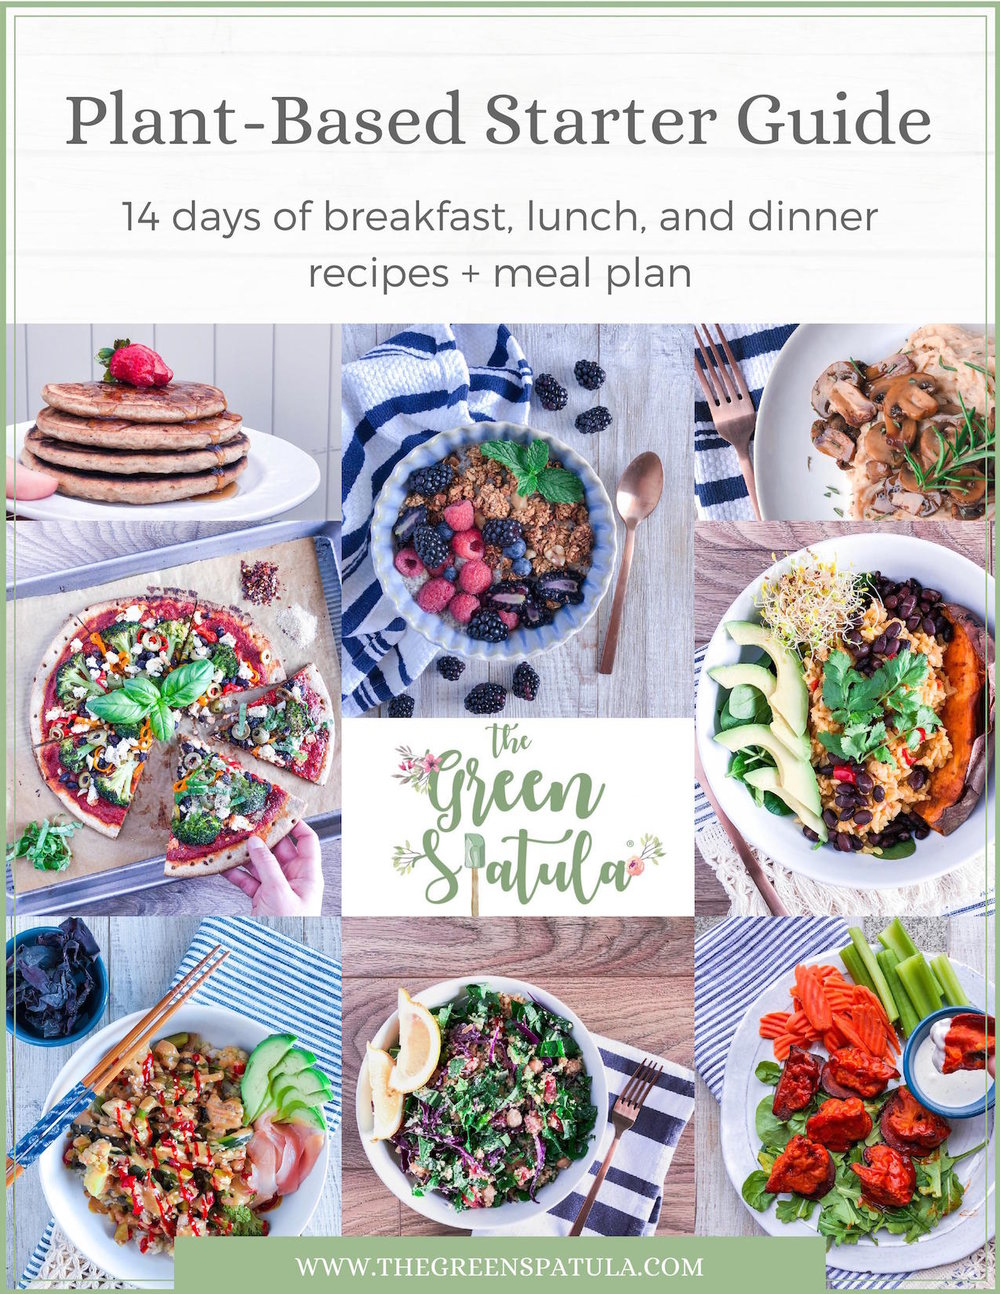 This FREE 14 Day Plant-Based Starter Guide helps you quit serial-dieting so you can enjoy food as it should be: real and delicious. Discover simple, tasty, and filling plant-based recipes like pancakes, Alfredo pasta, cauliflower buffalo bites, veggie sushi, and so much more! Use the handy meal plan to help you get started. Never rely on fad diets again. Download your FREE copy of the Plant-Based Starter Guide and discover a better relationship with food. #vegan #cleaneating #plantbased #mealplan #recipes #glutenfree #health